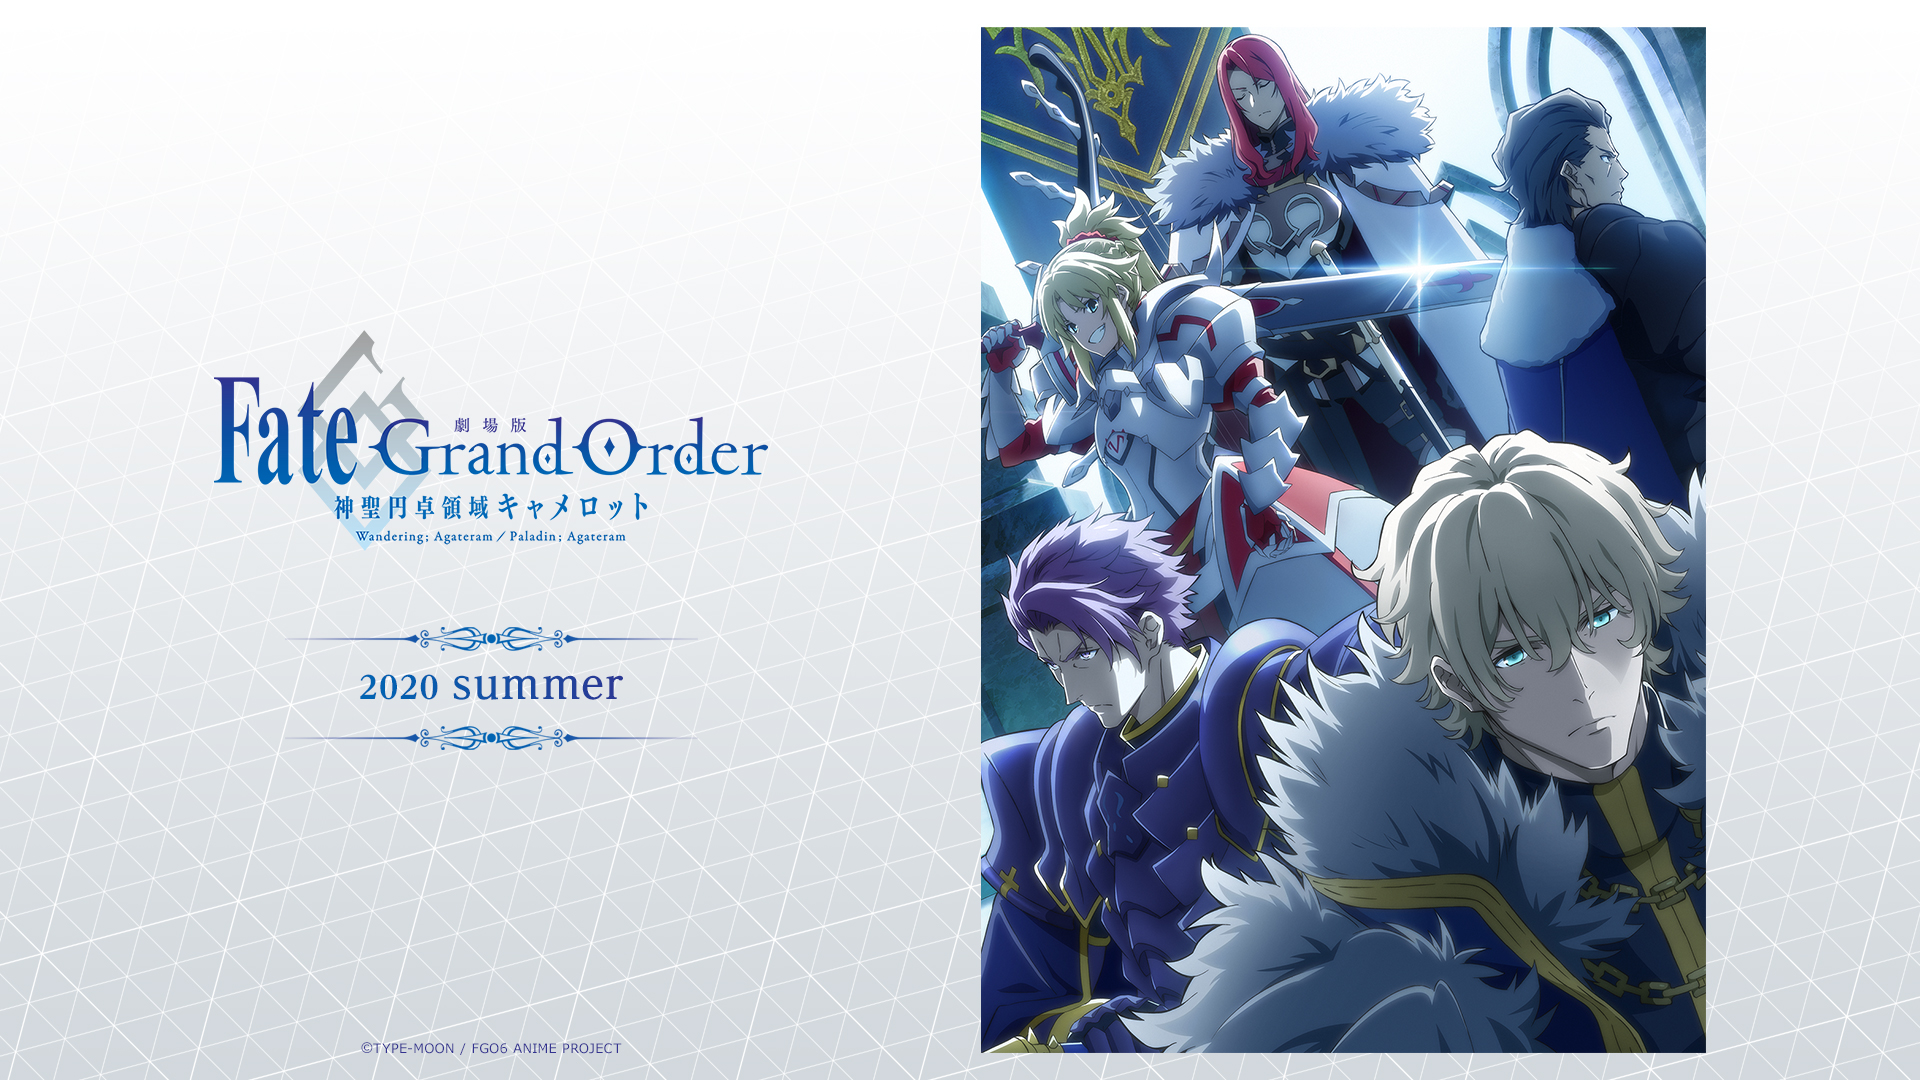 Special Fate Grand Order 神聖円卓領域キャメロット 公式サイト